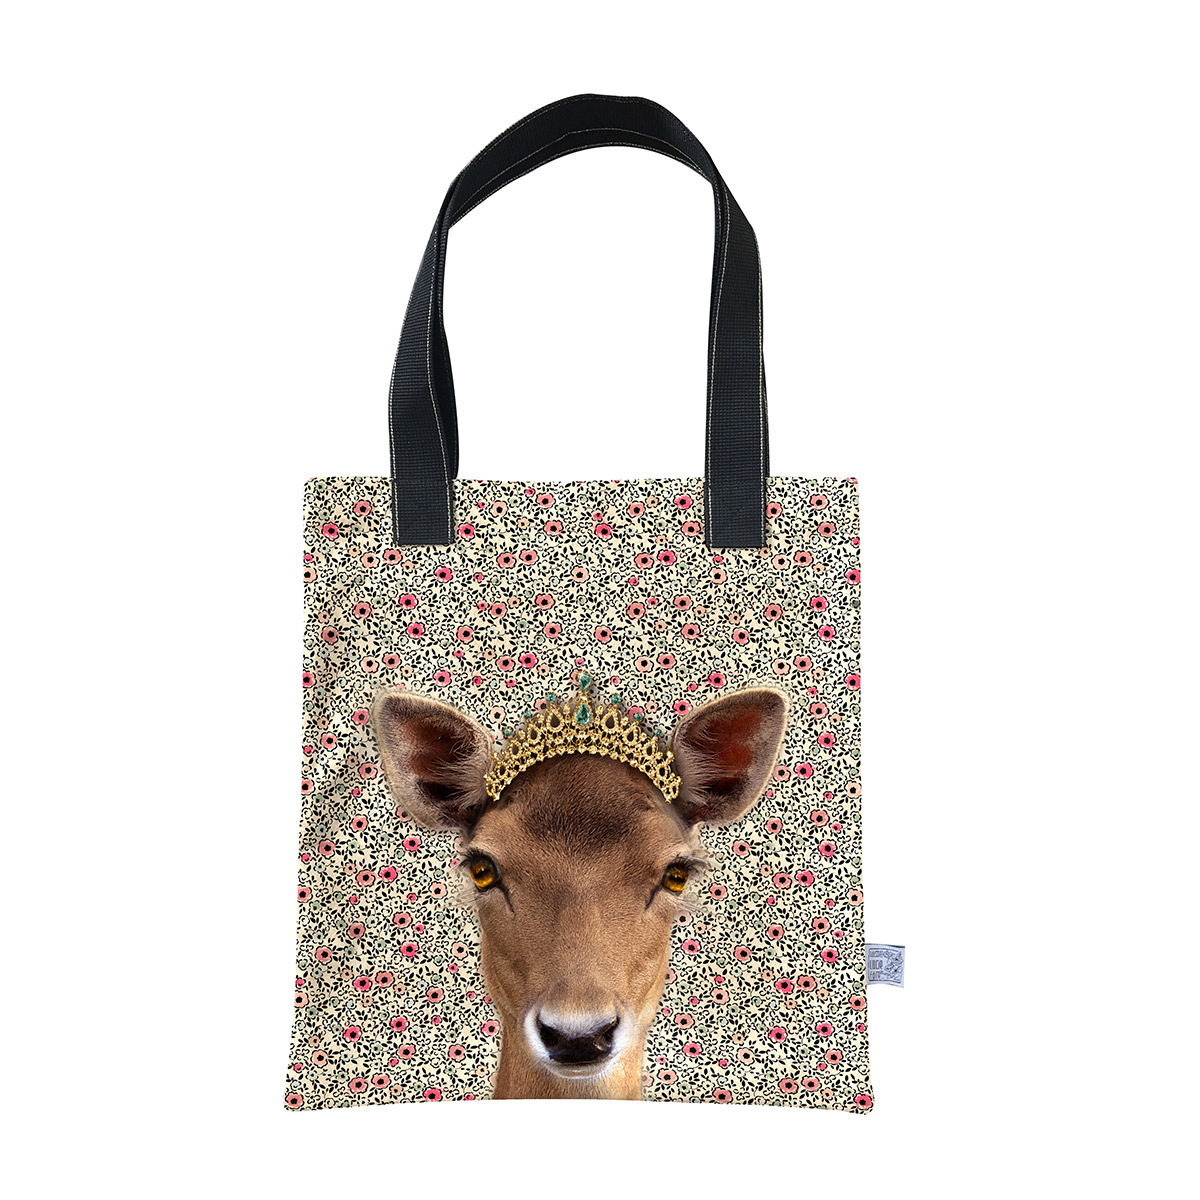 Sac Tote bag Kate - 36x40cm